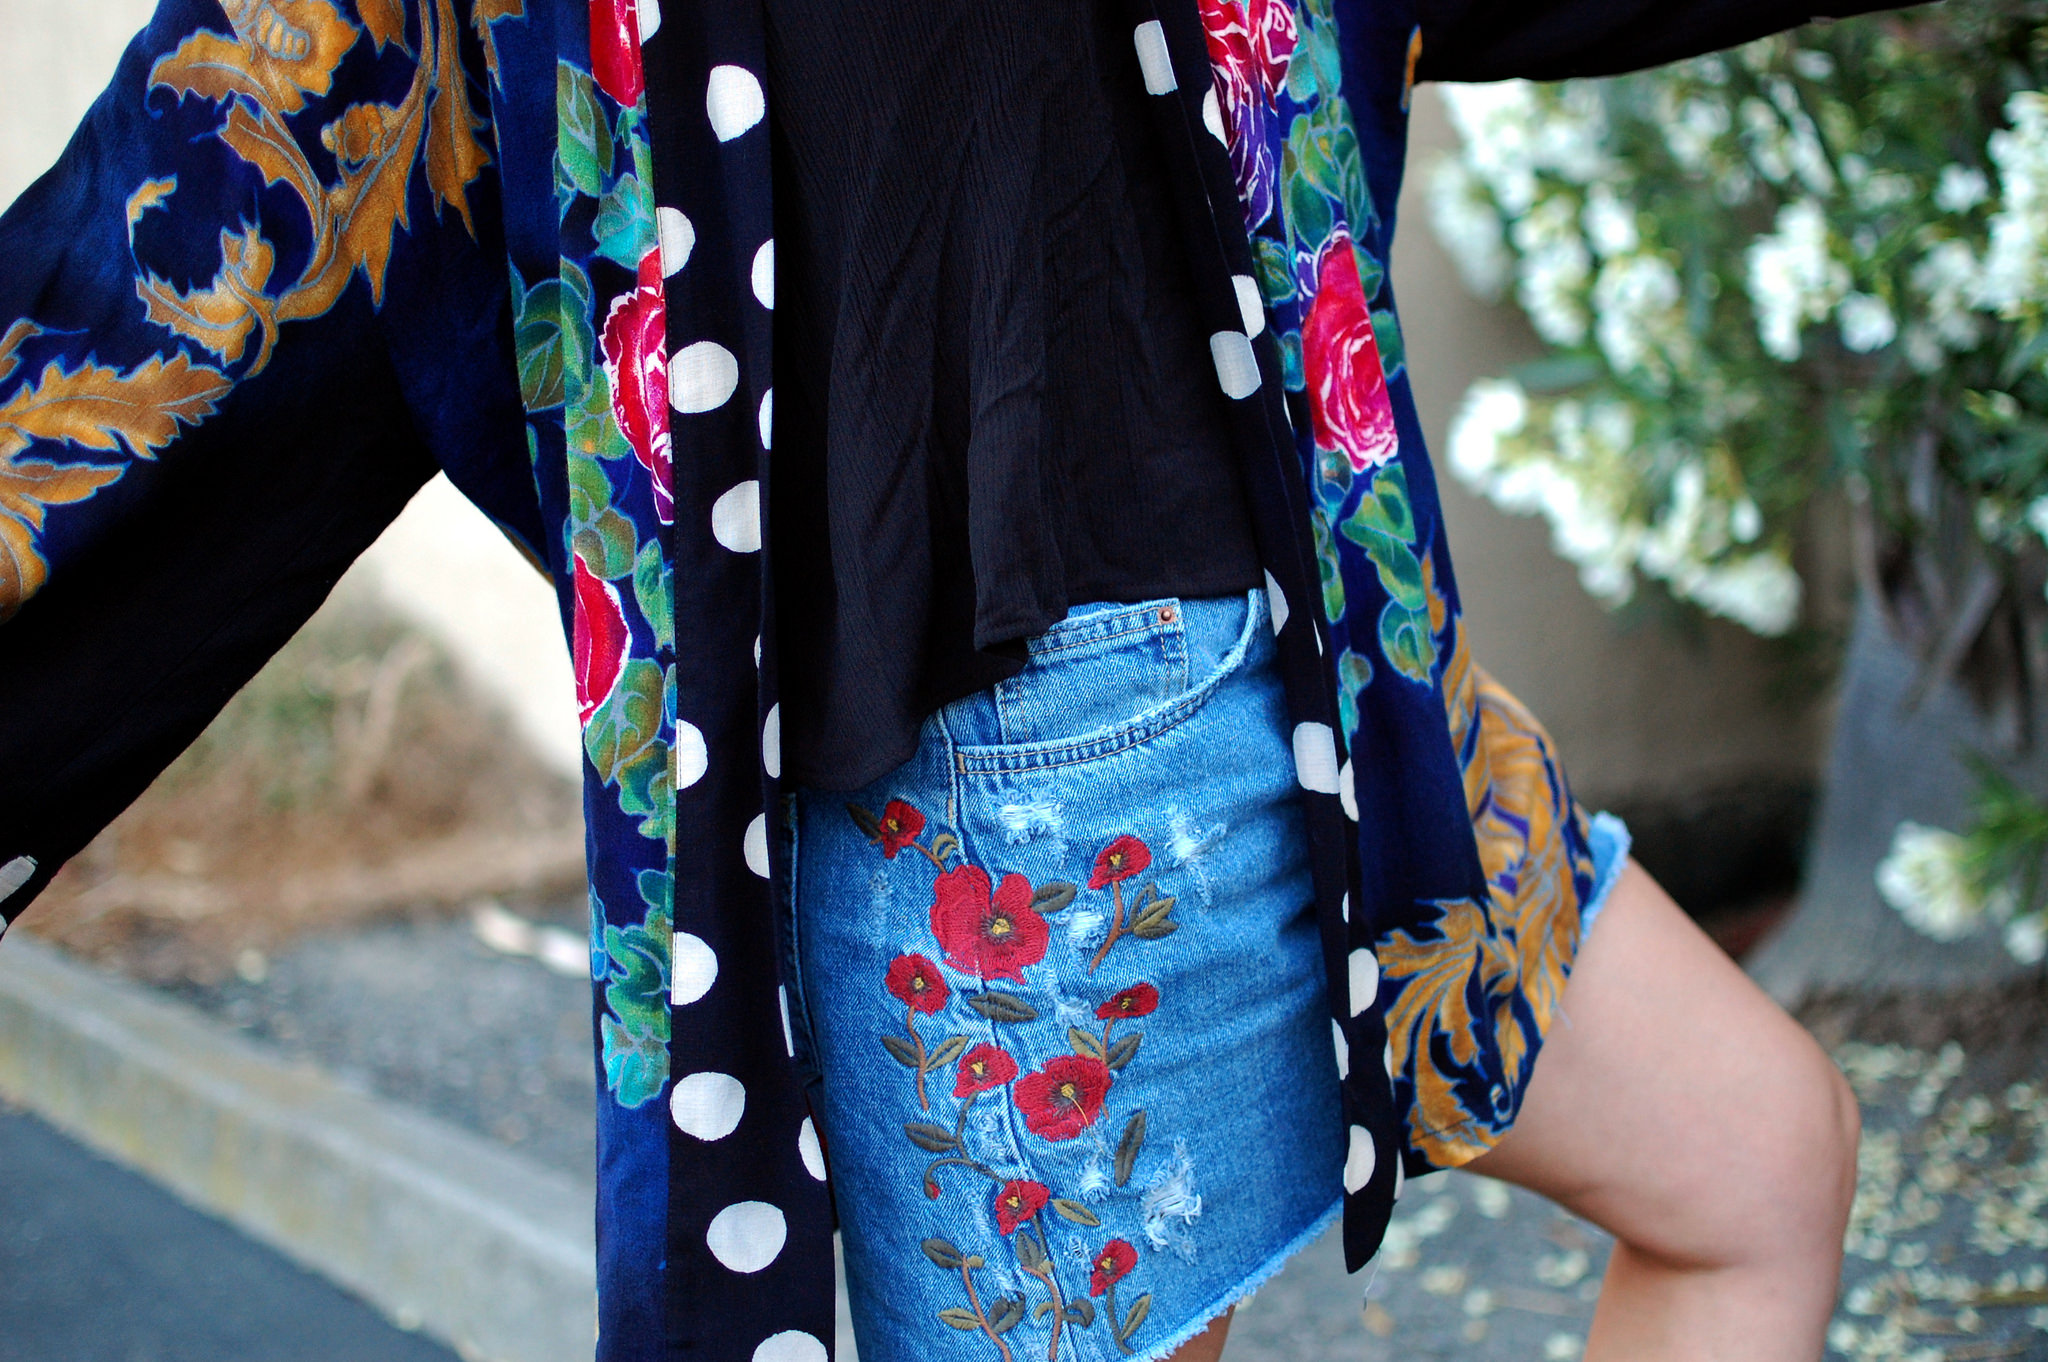 kimono floral denim skirt ootd outfit whatiwore2day